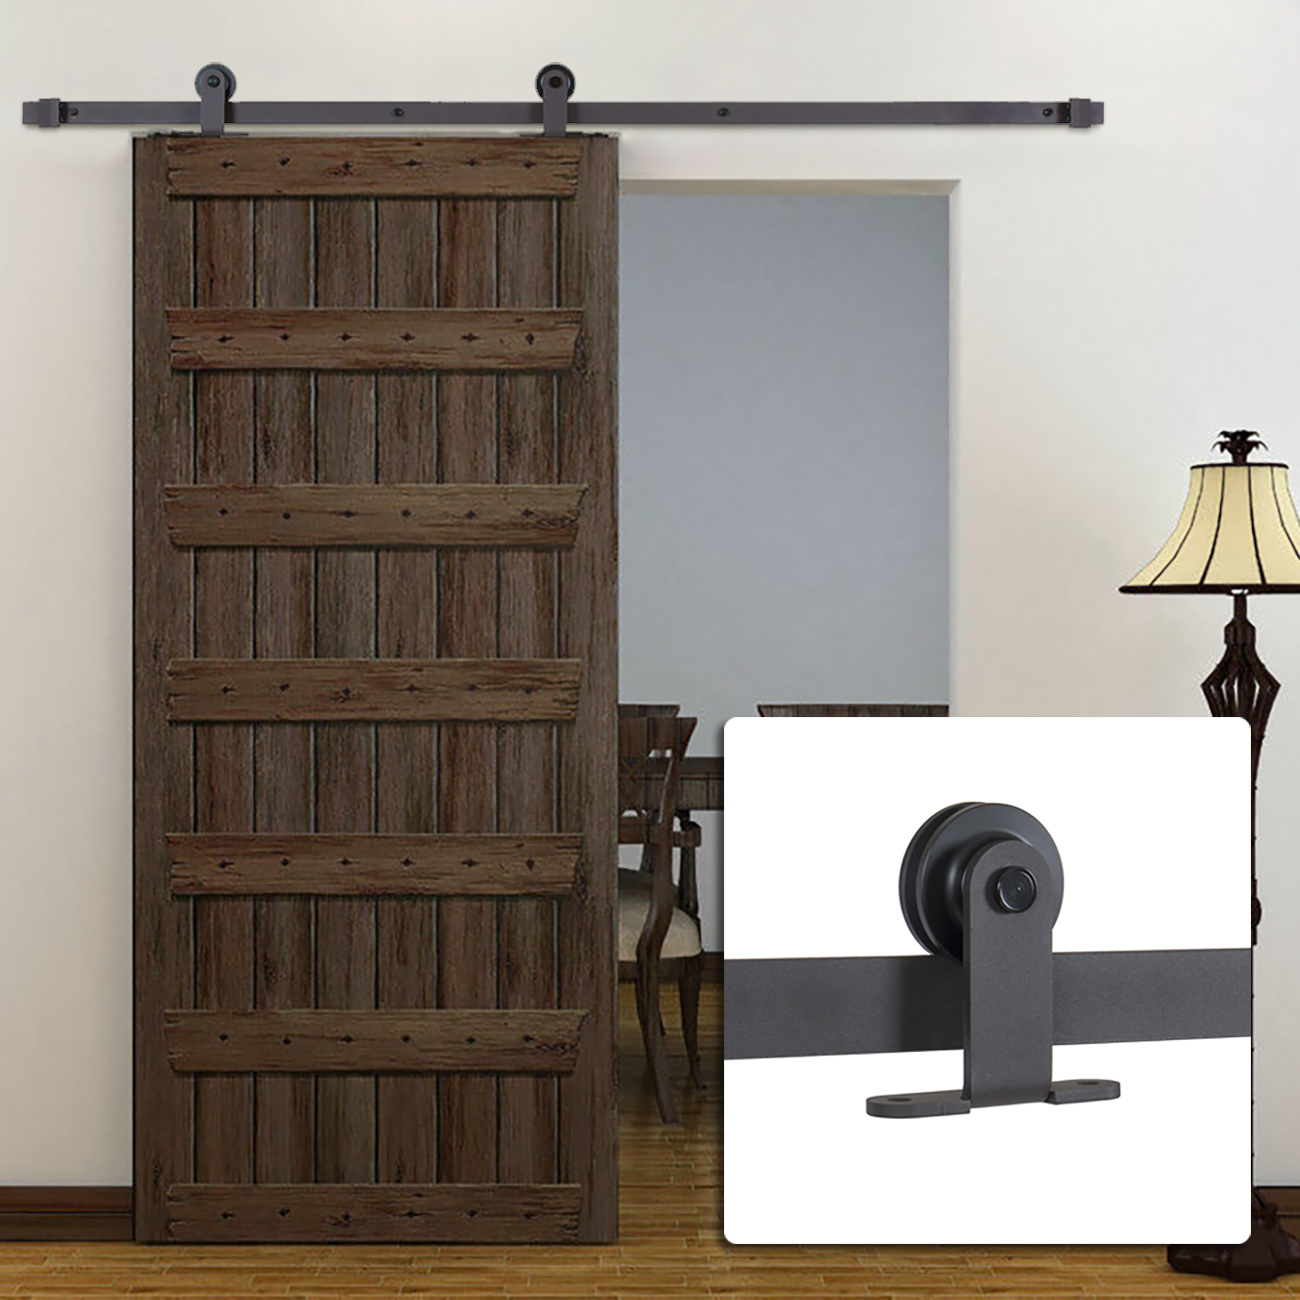 6 FT Modern European Steel Sliding Barn Door Hardware   Black